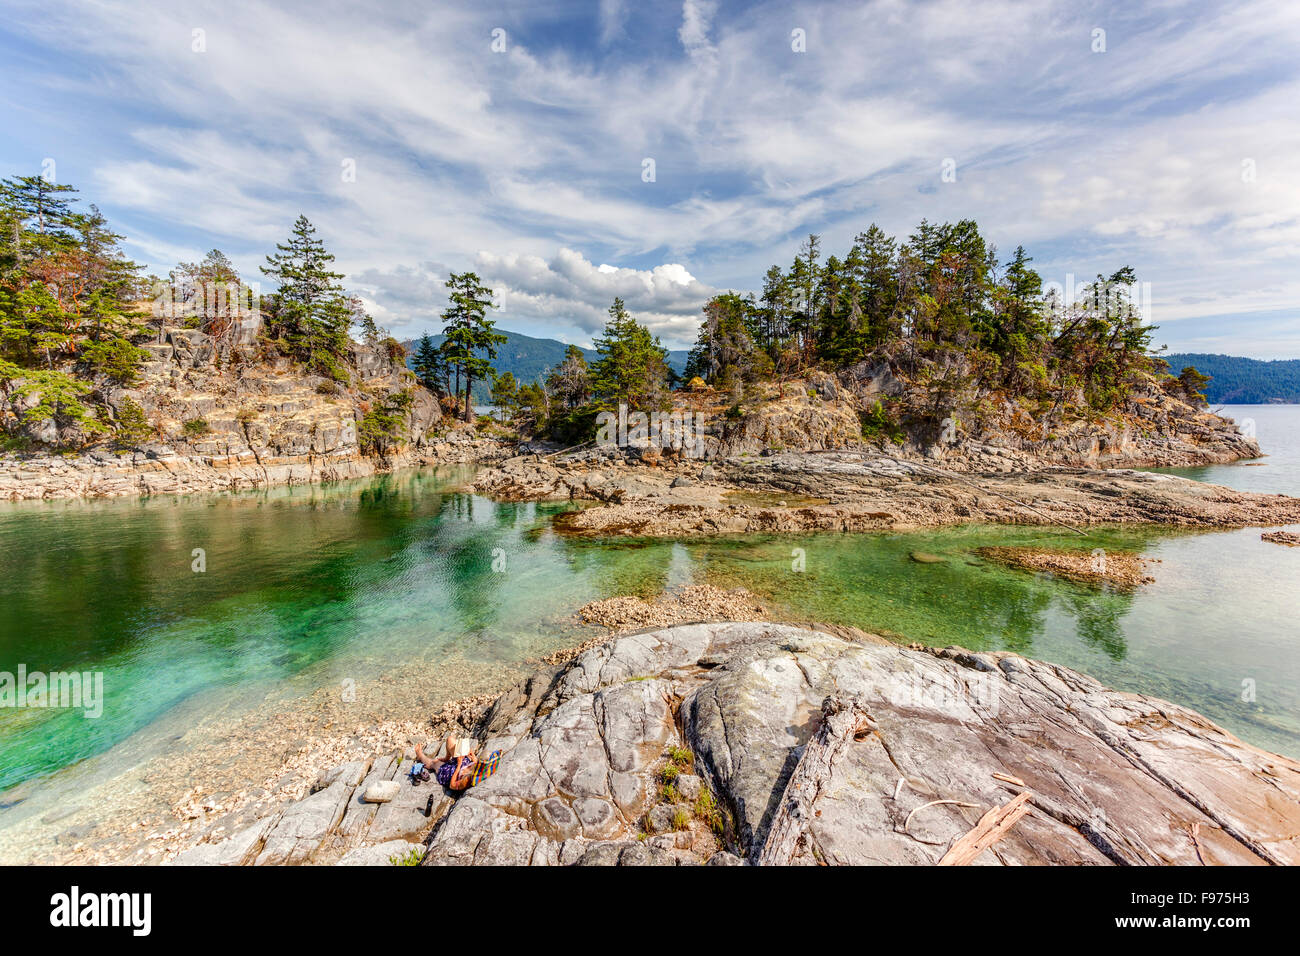 The view from West Curme looking towards East Curme Island at low tide. Desolation Sound Marine Park, British Columbia, - Stock Image